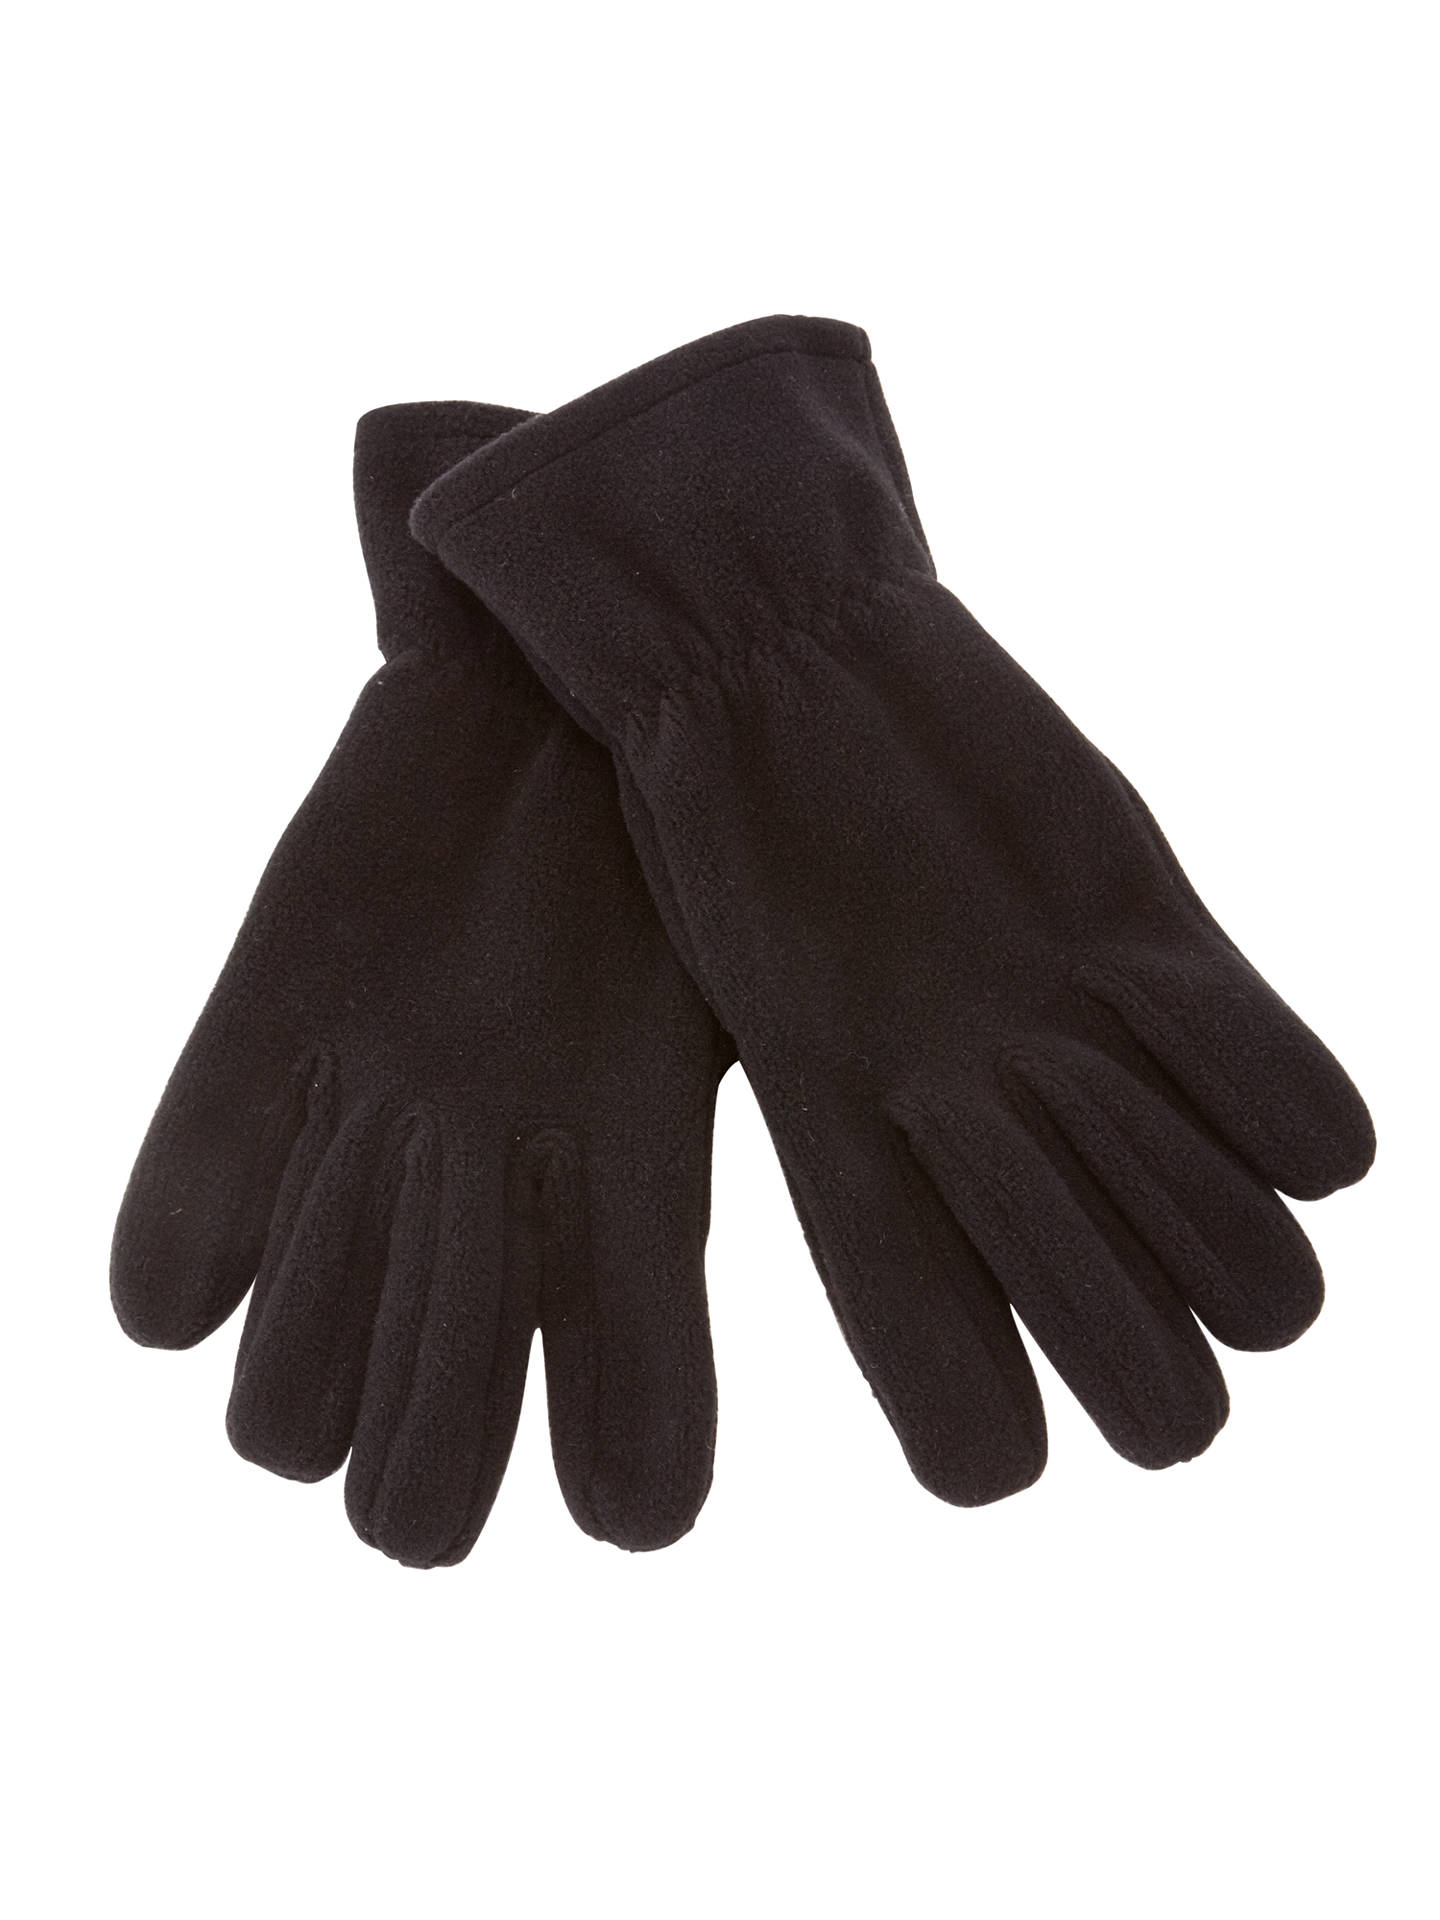 BuySchool Fleece Gloves, Black, 5-7 years Online at johnlewis.com